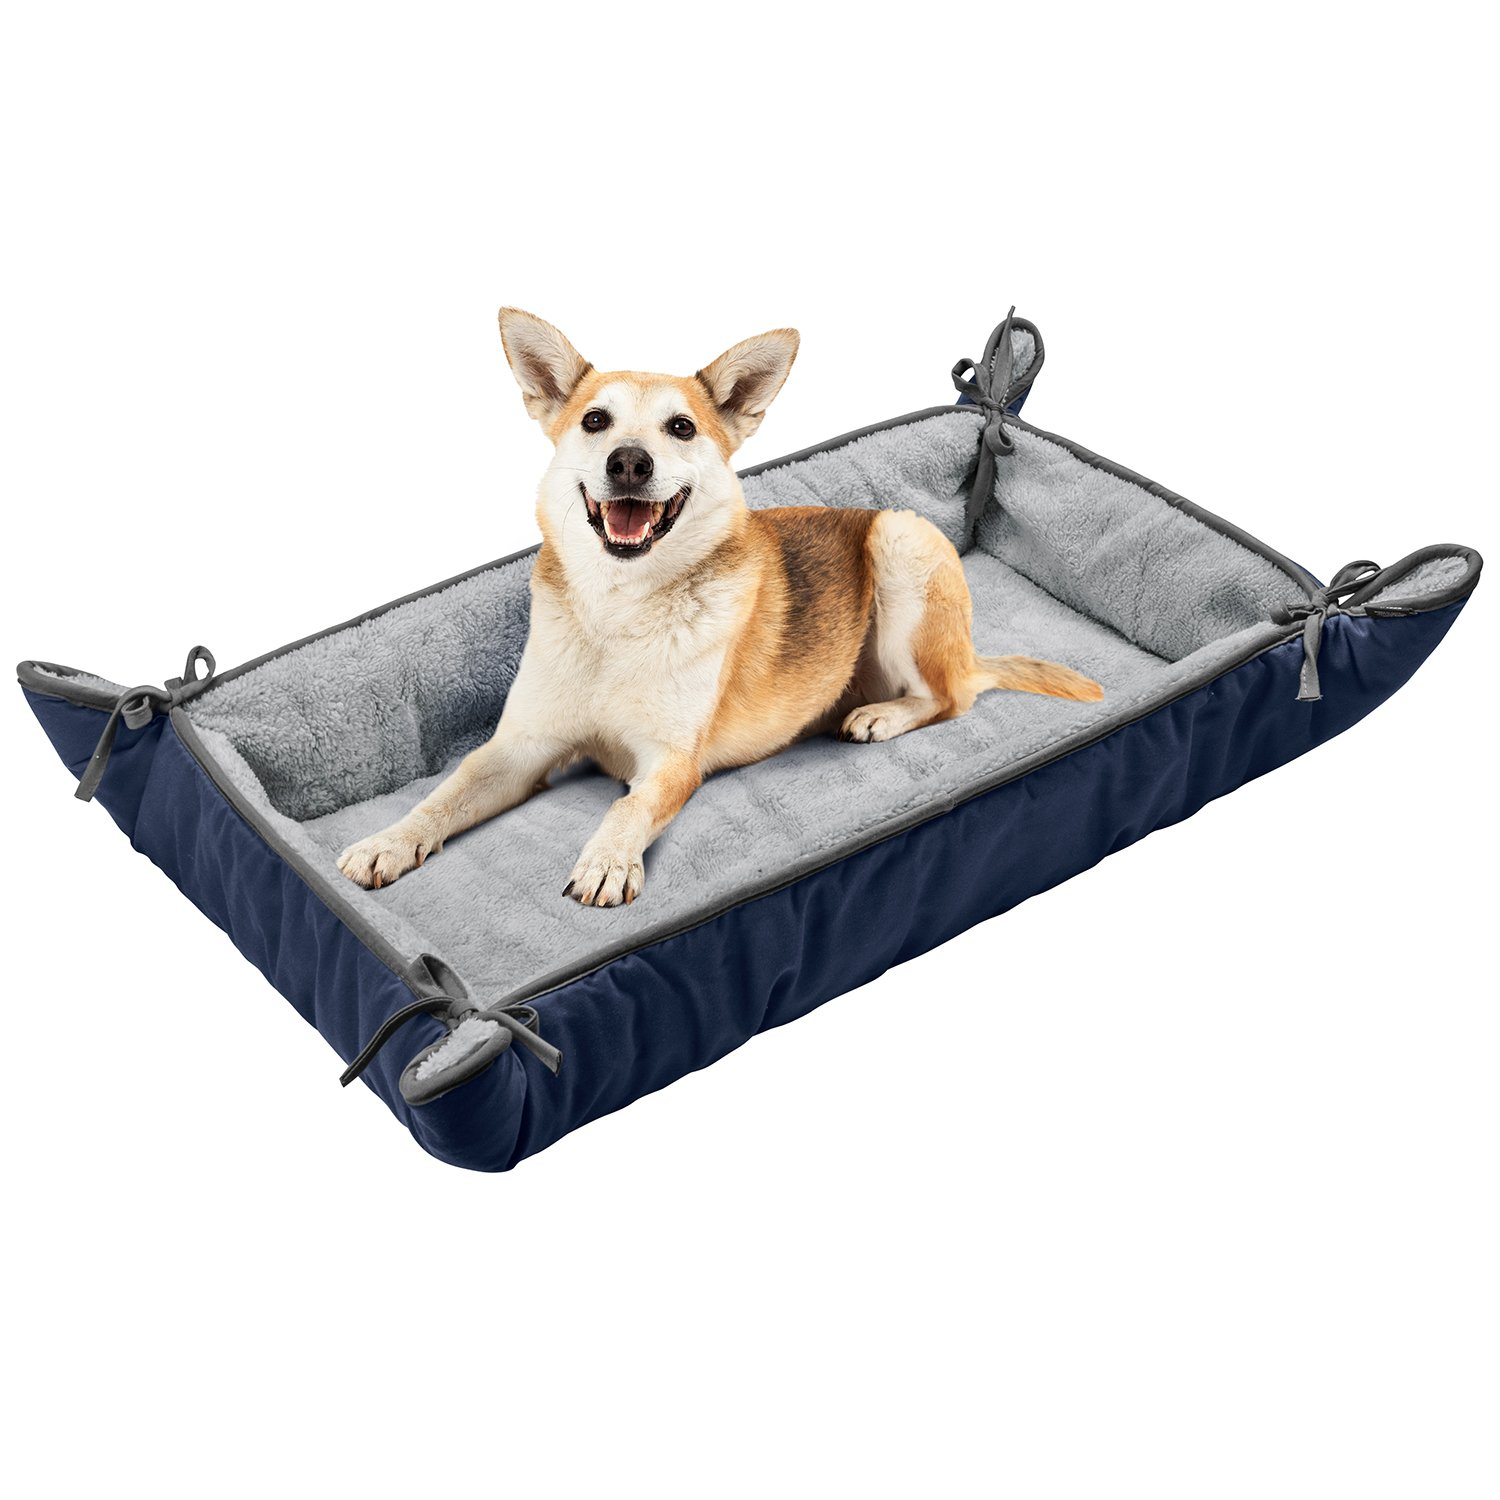 Dog Cuddler Bed,Washable Crate Pad Mat Blanket,Soft Plush Thick Pet Sofa Kennel Cushion Liner for Small Medium Large Dogs Puppy Cats Blue